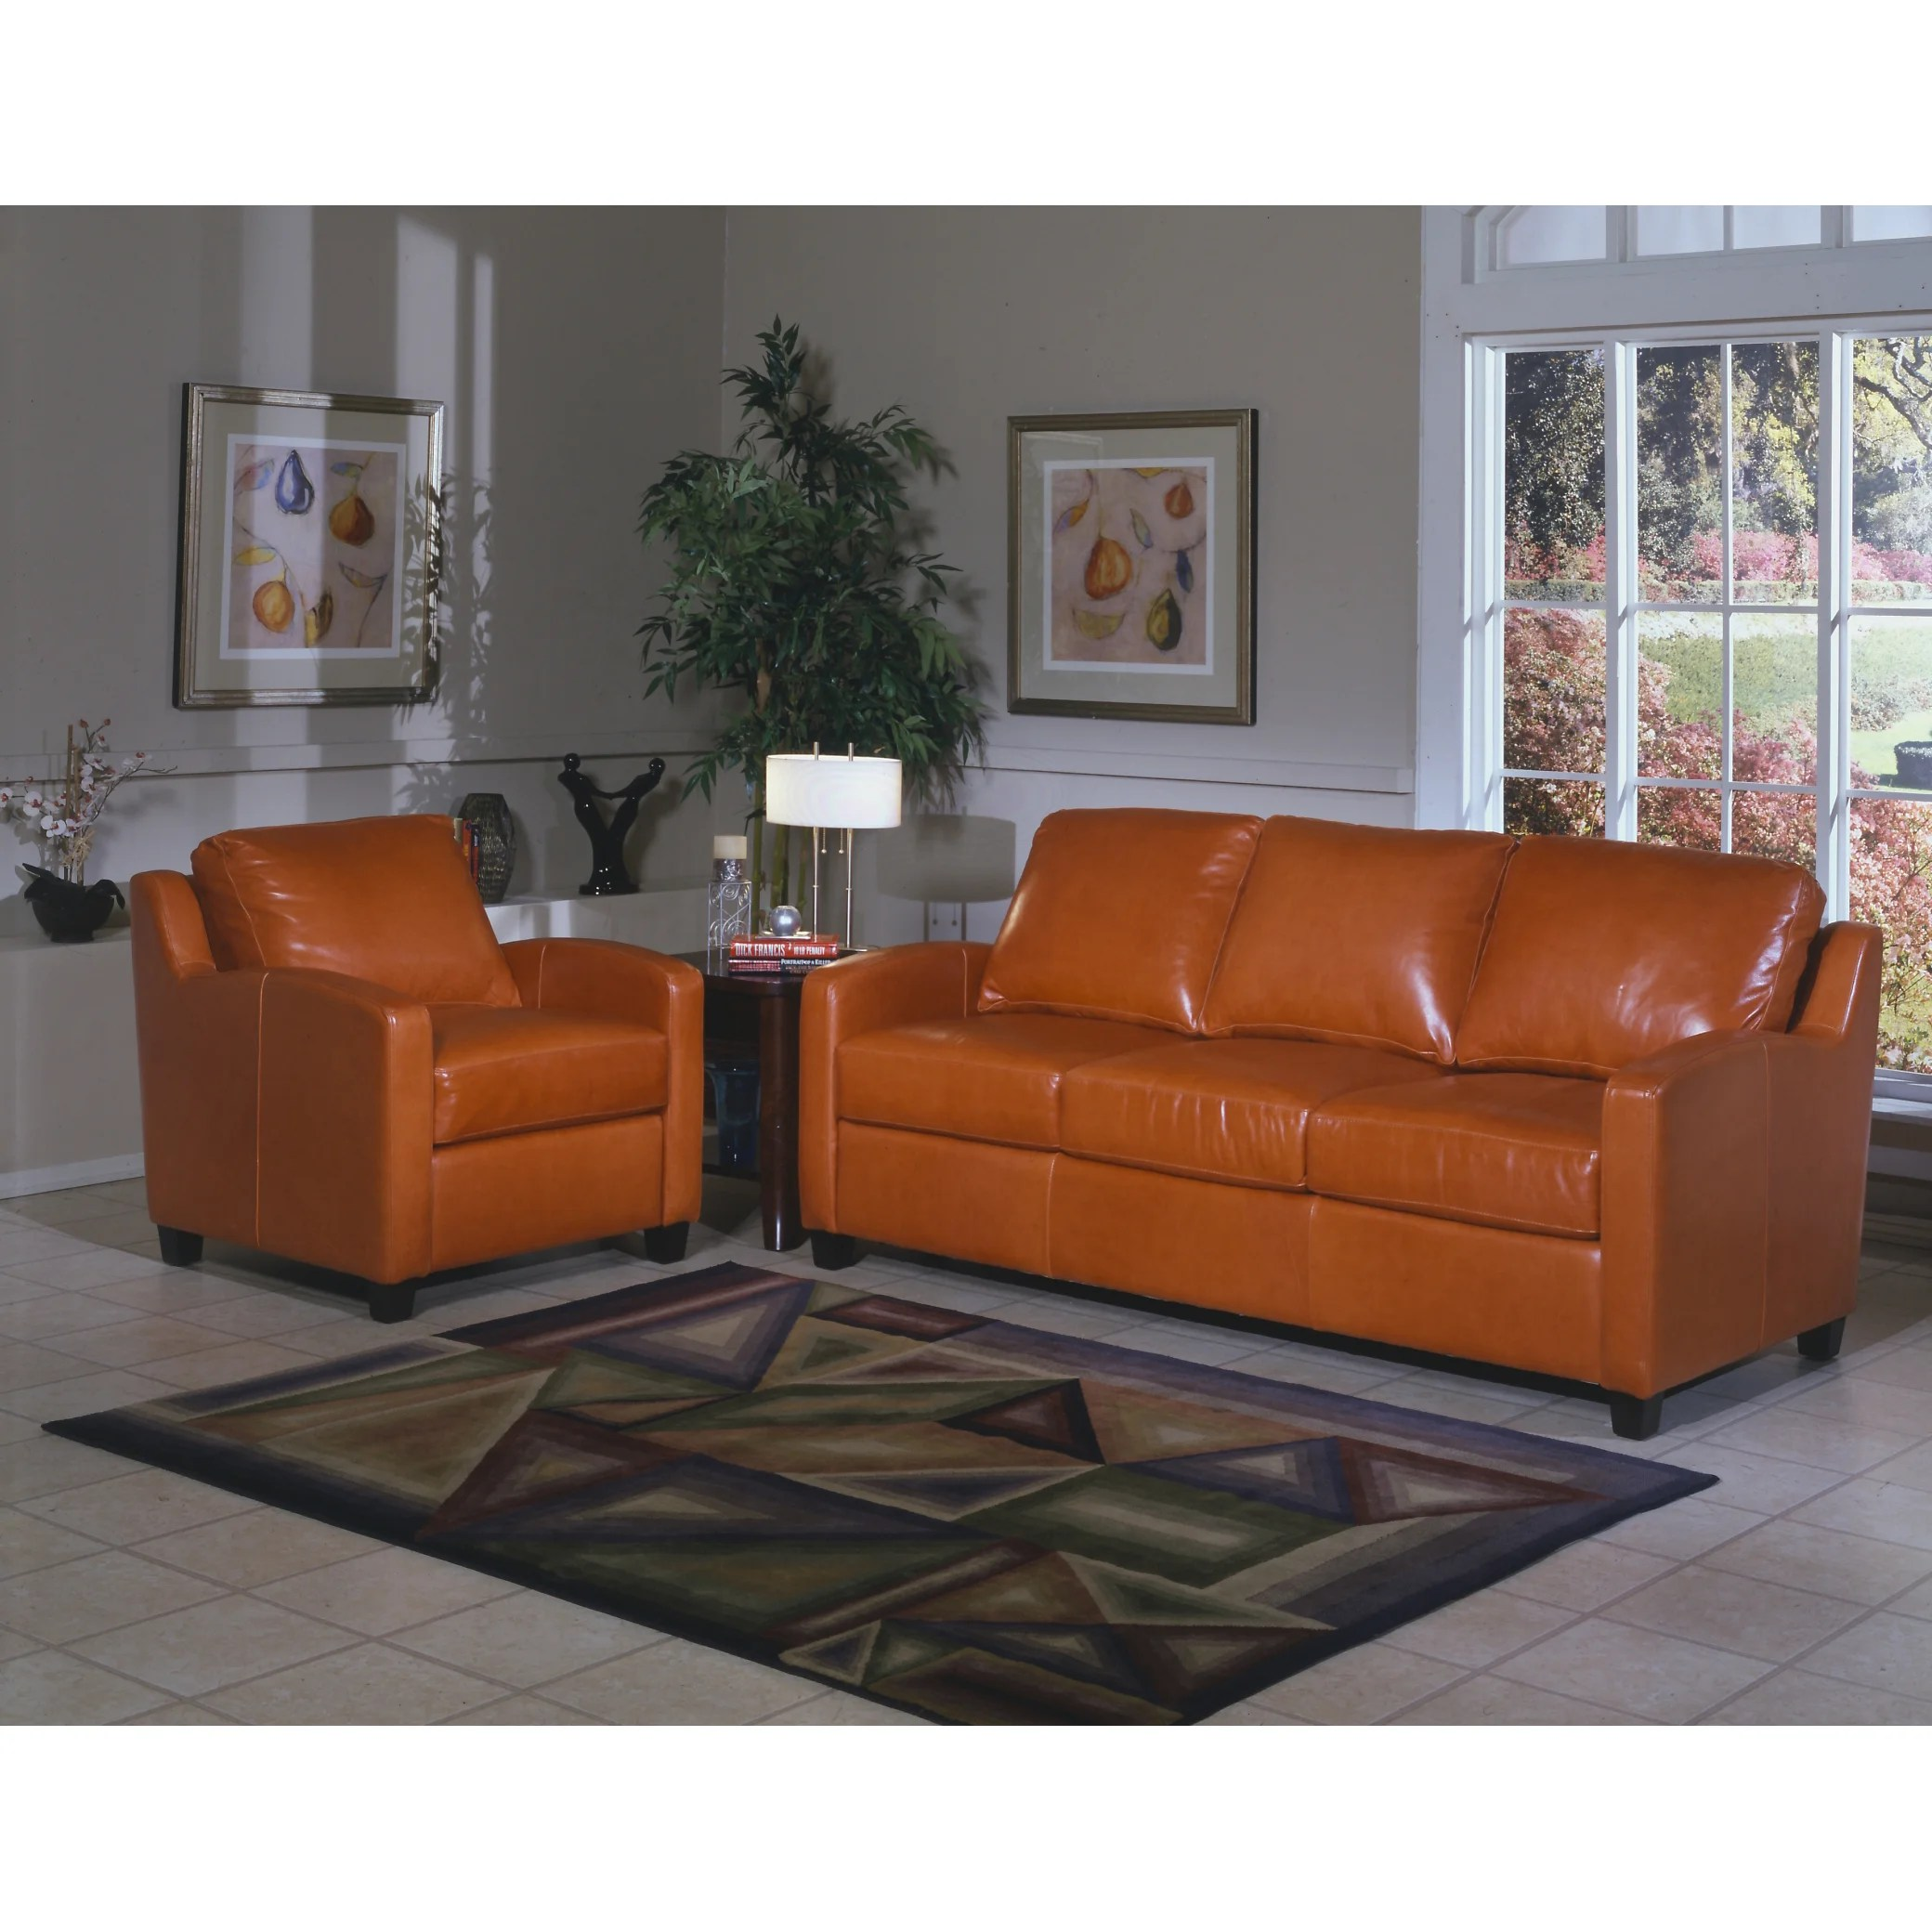 Latitude Run Calla Leather Sofa Reviews Wayfair Dania Leather Sofa